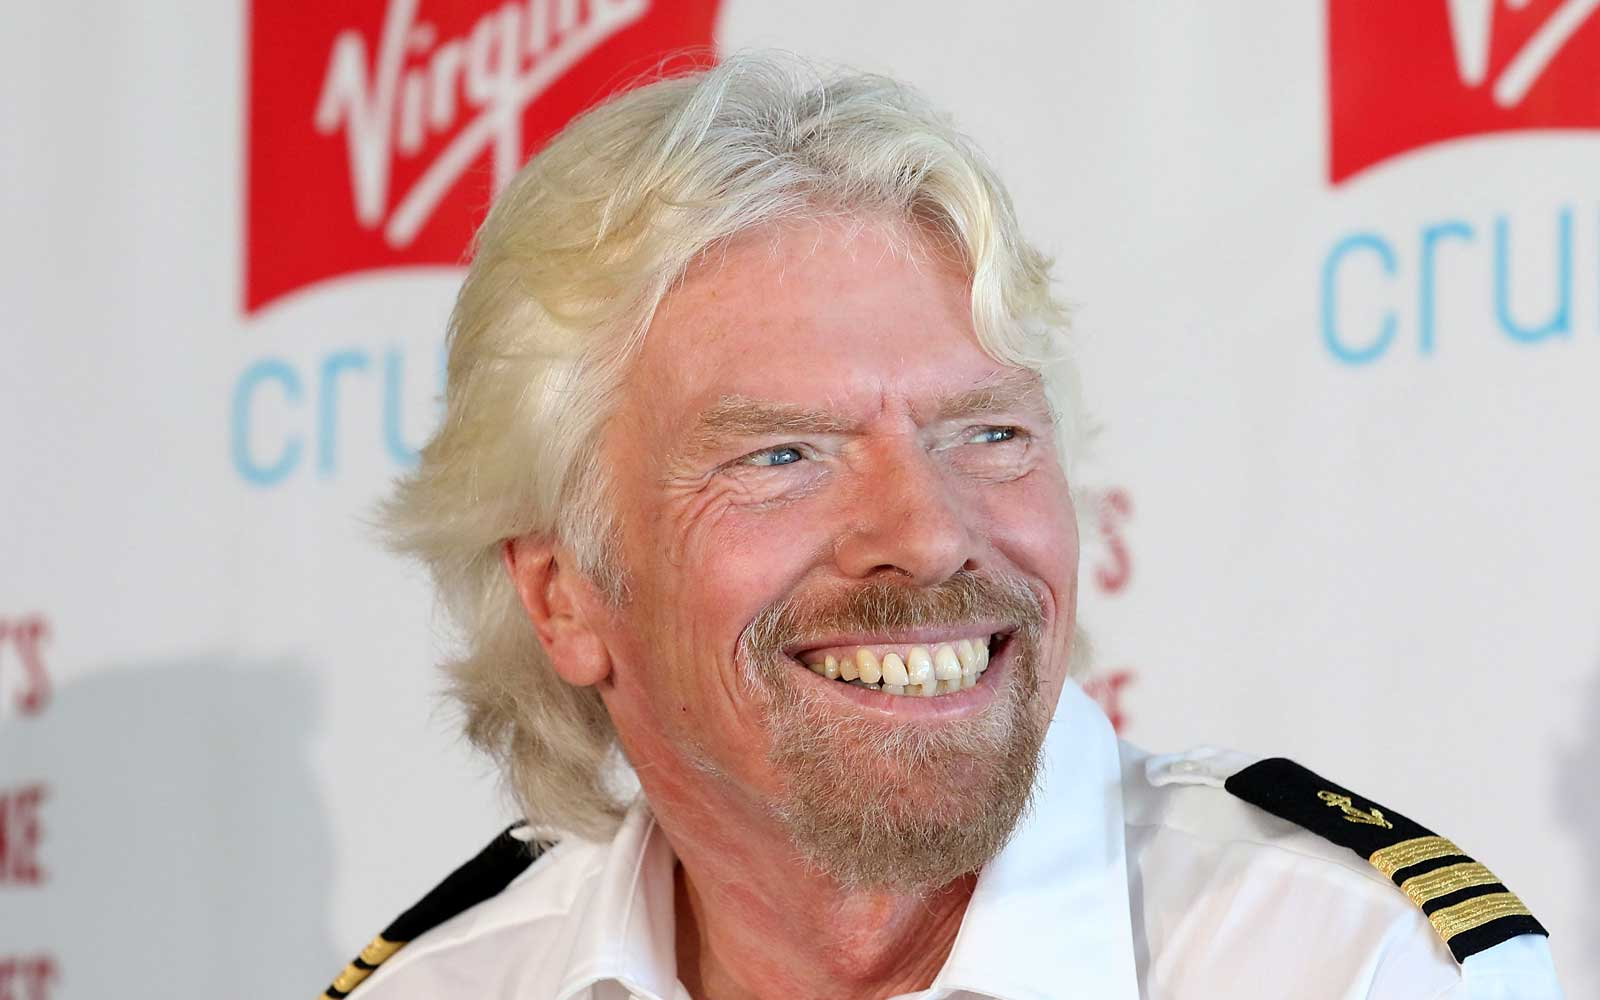 Richard Branson hints at potentially starting a new airline in the U.S.